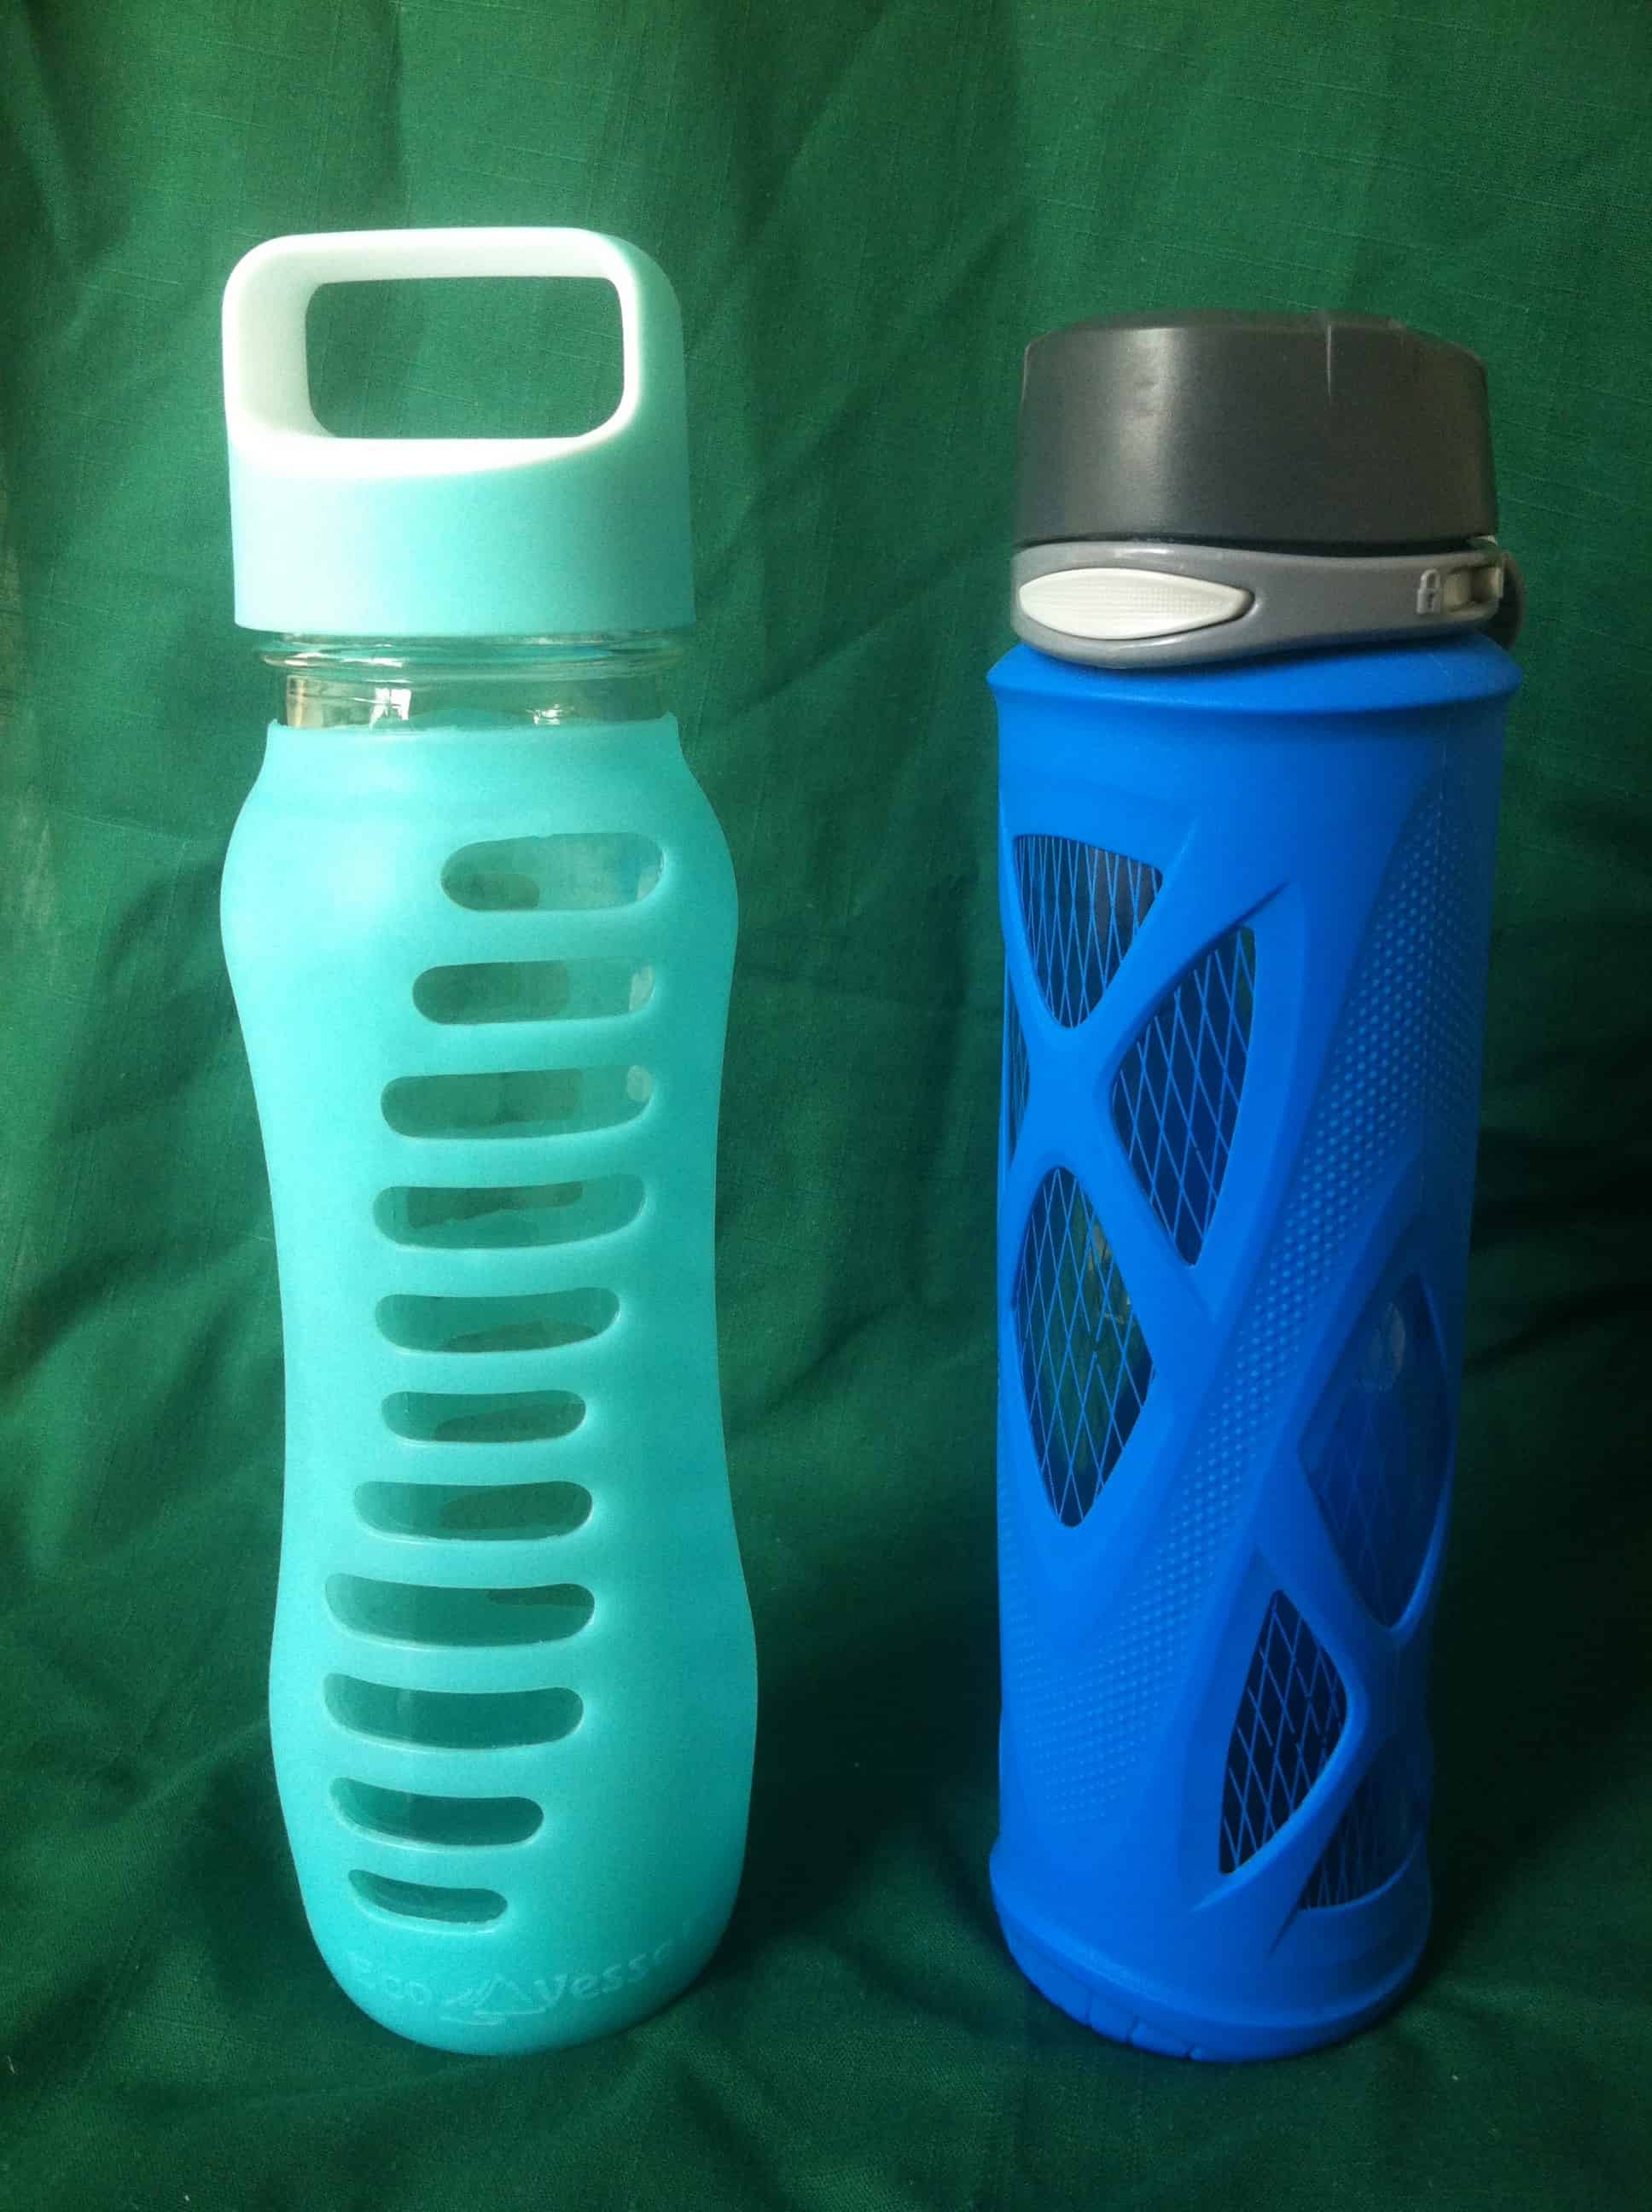 Eco Vessel Glass Water Bottle vs Zulz Glass Water Bottle